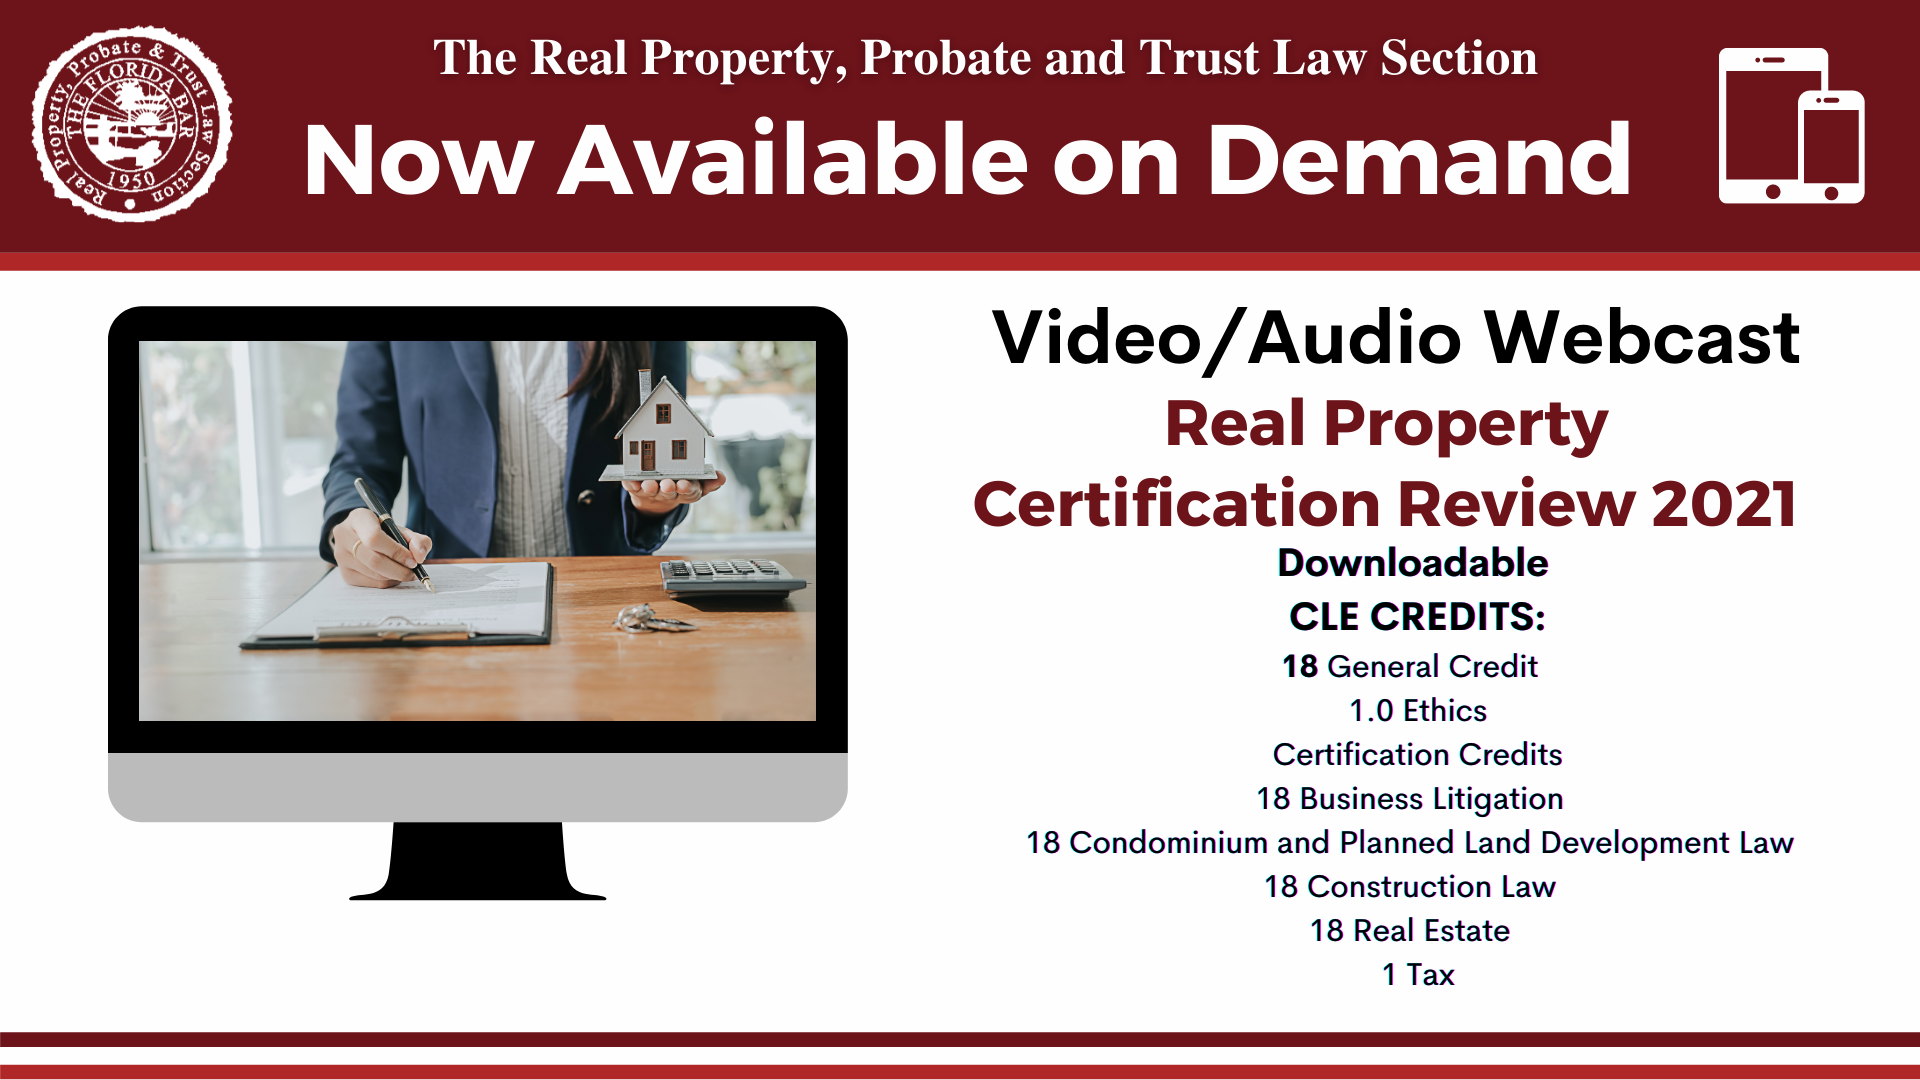 Real Property Certification Review Course Available On Demand